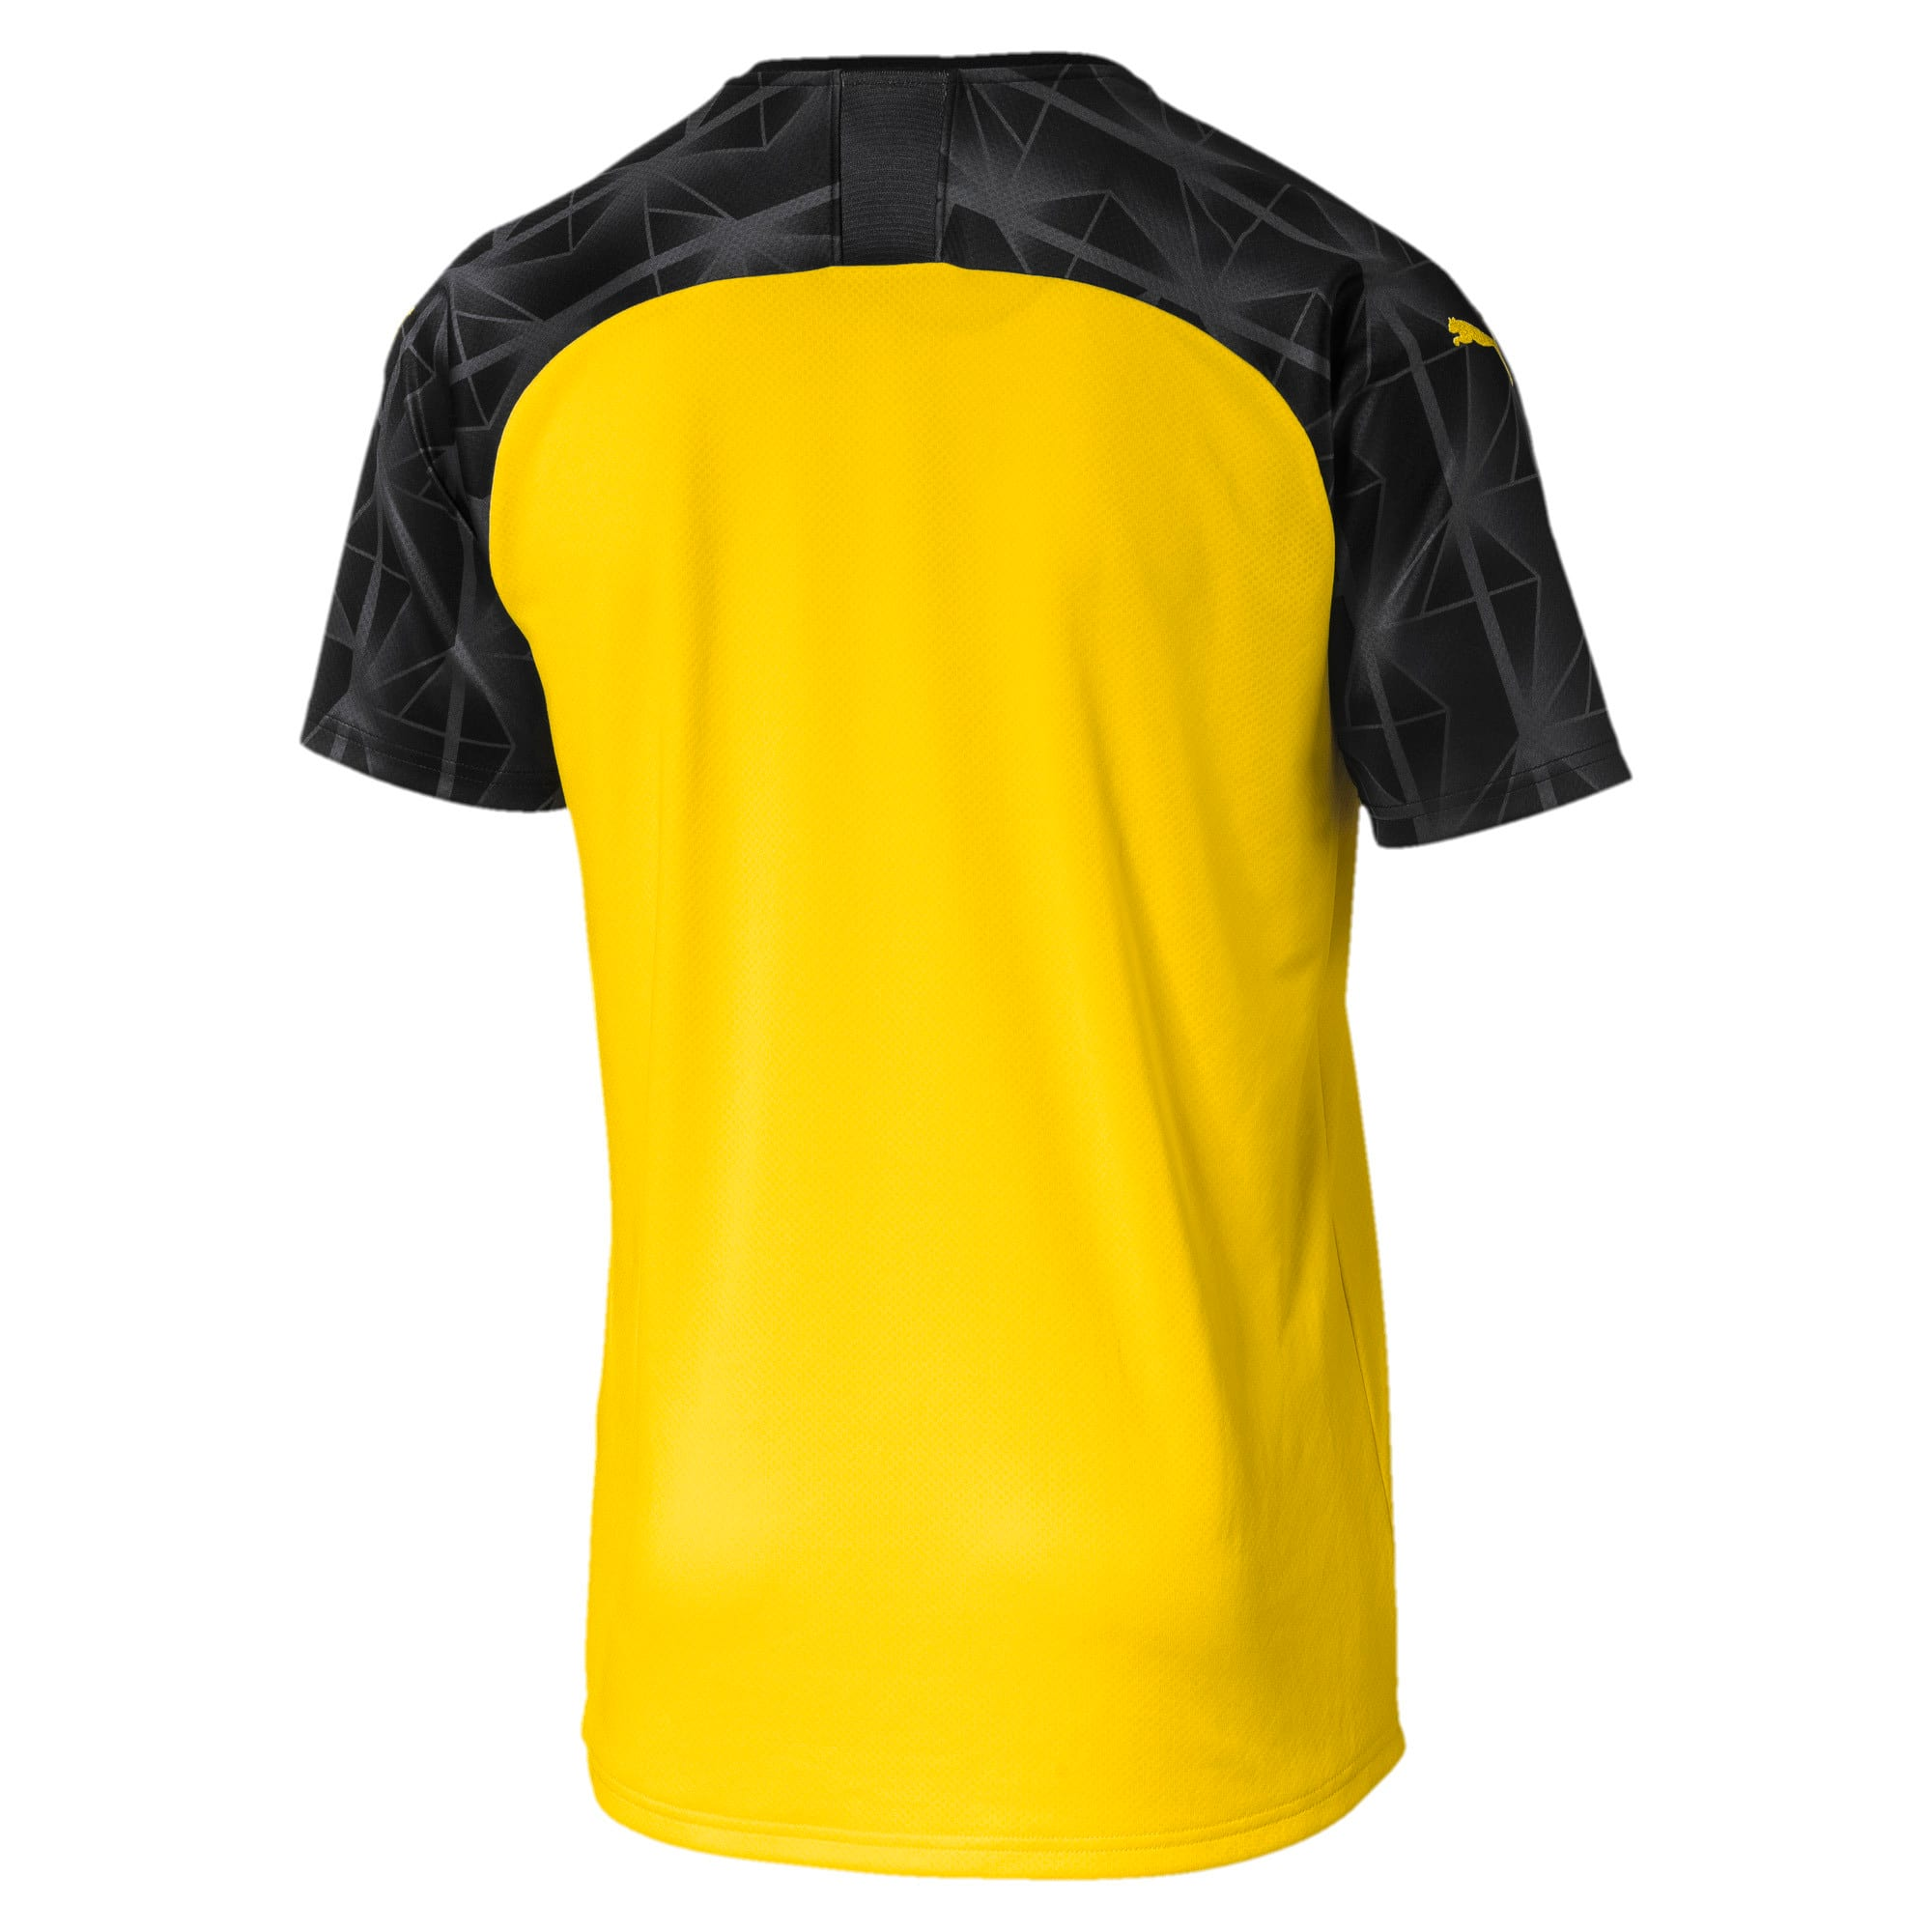 Thumbnail 2 of BVB Herren Replica Cup Trikot, Cyber Yellow-Puma Black, medium